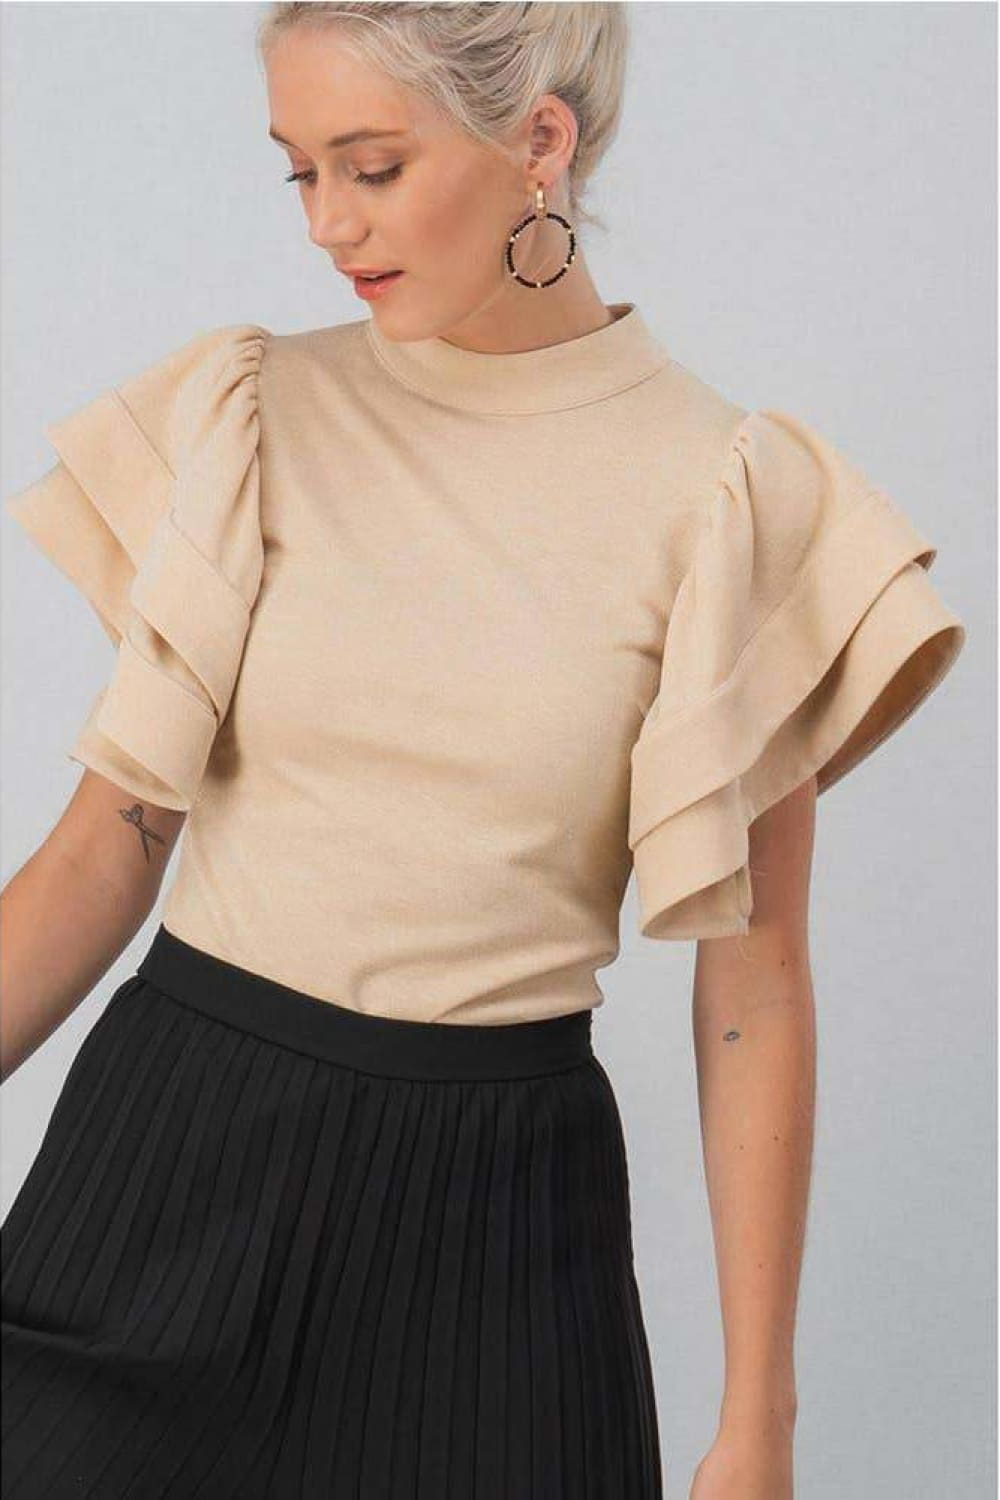 Bella Tiered Bell Sleeve Blouse - Blouses - trend:notes